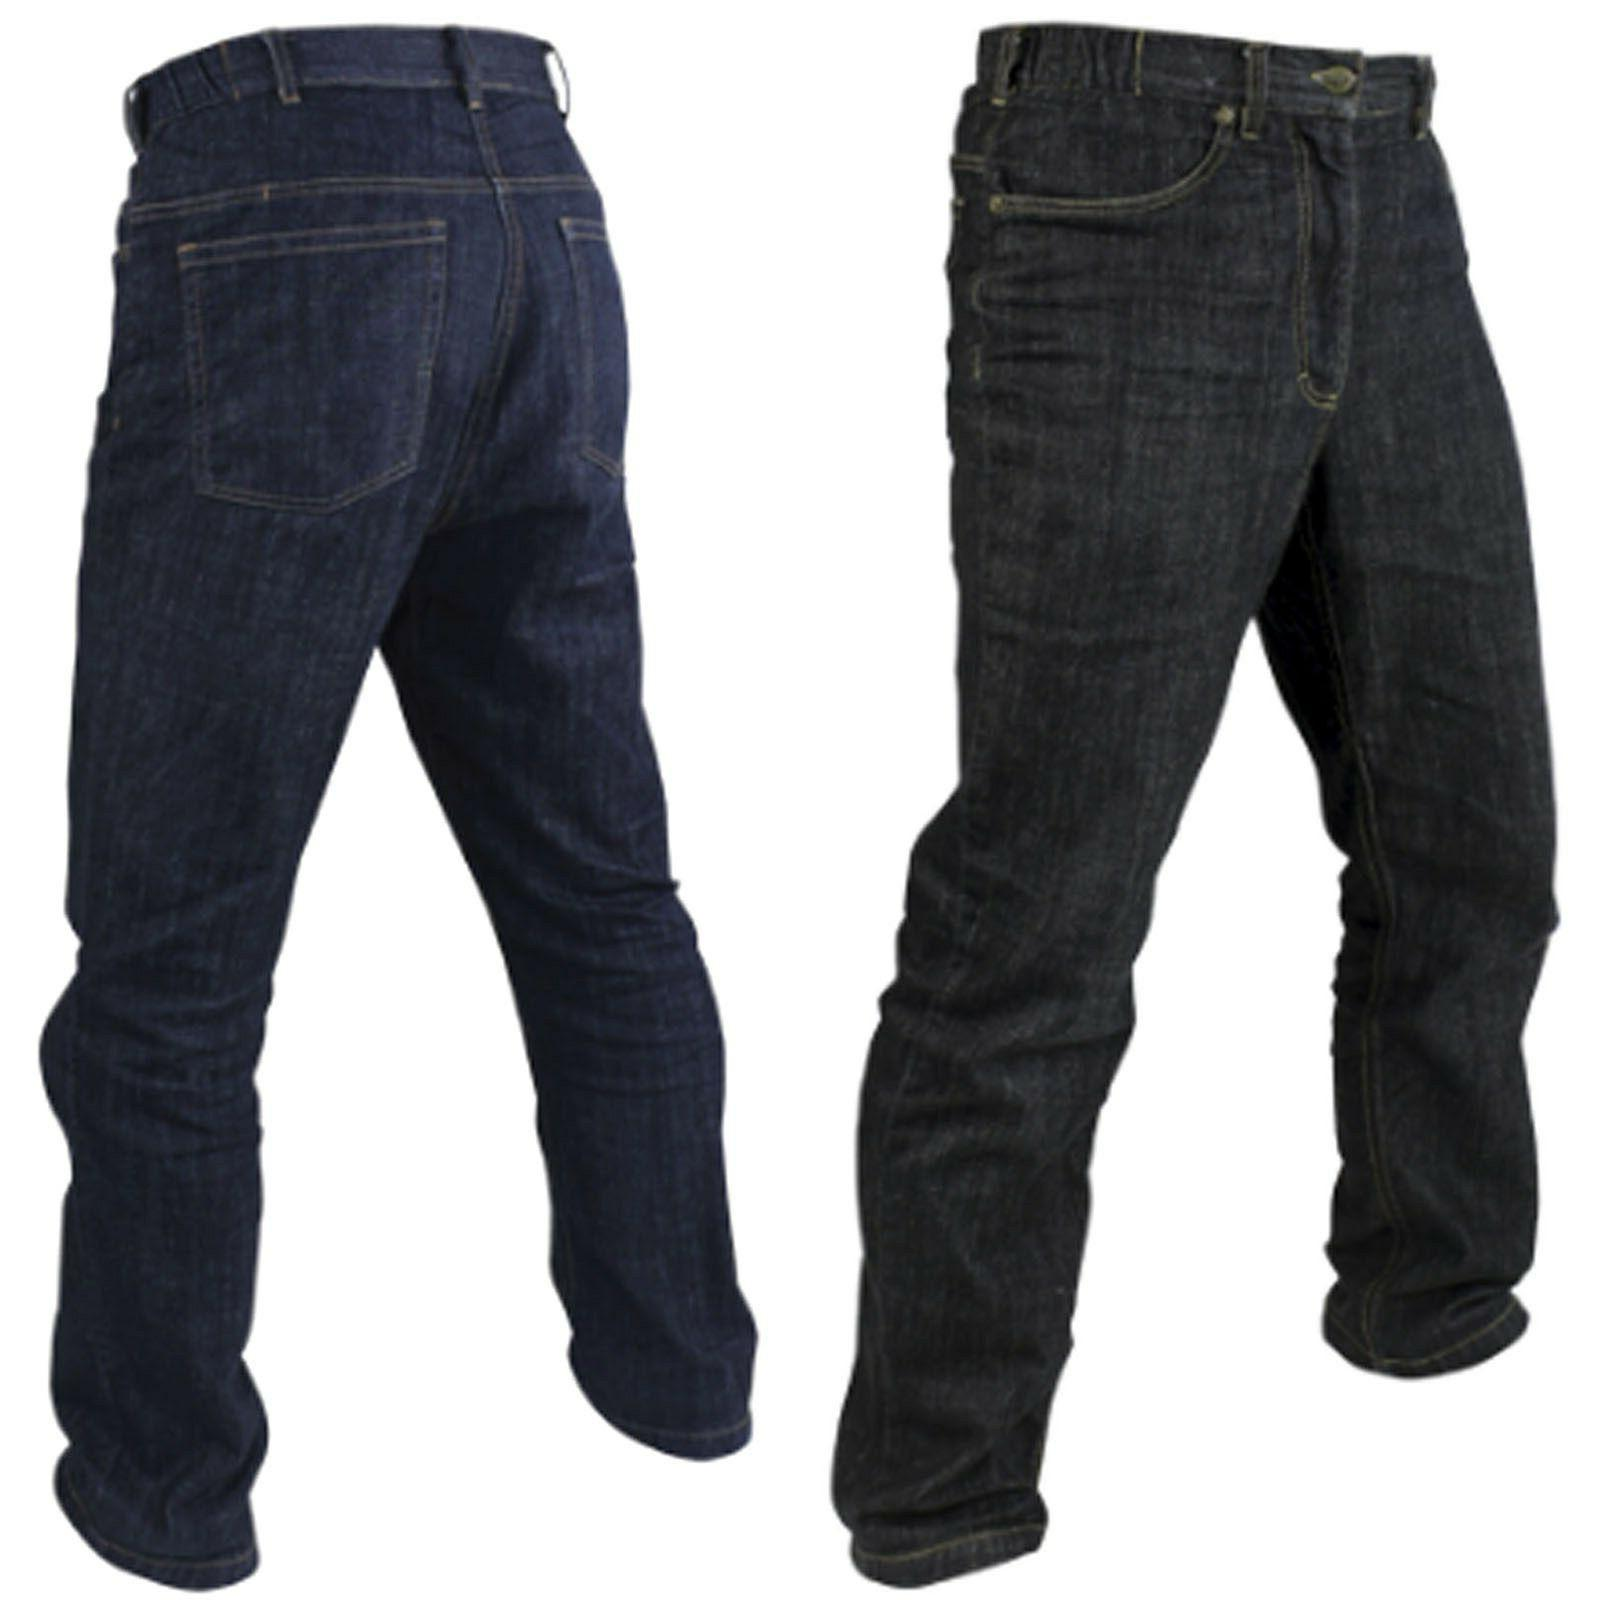 101137 cipher stretch elastic tactical casual work